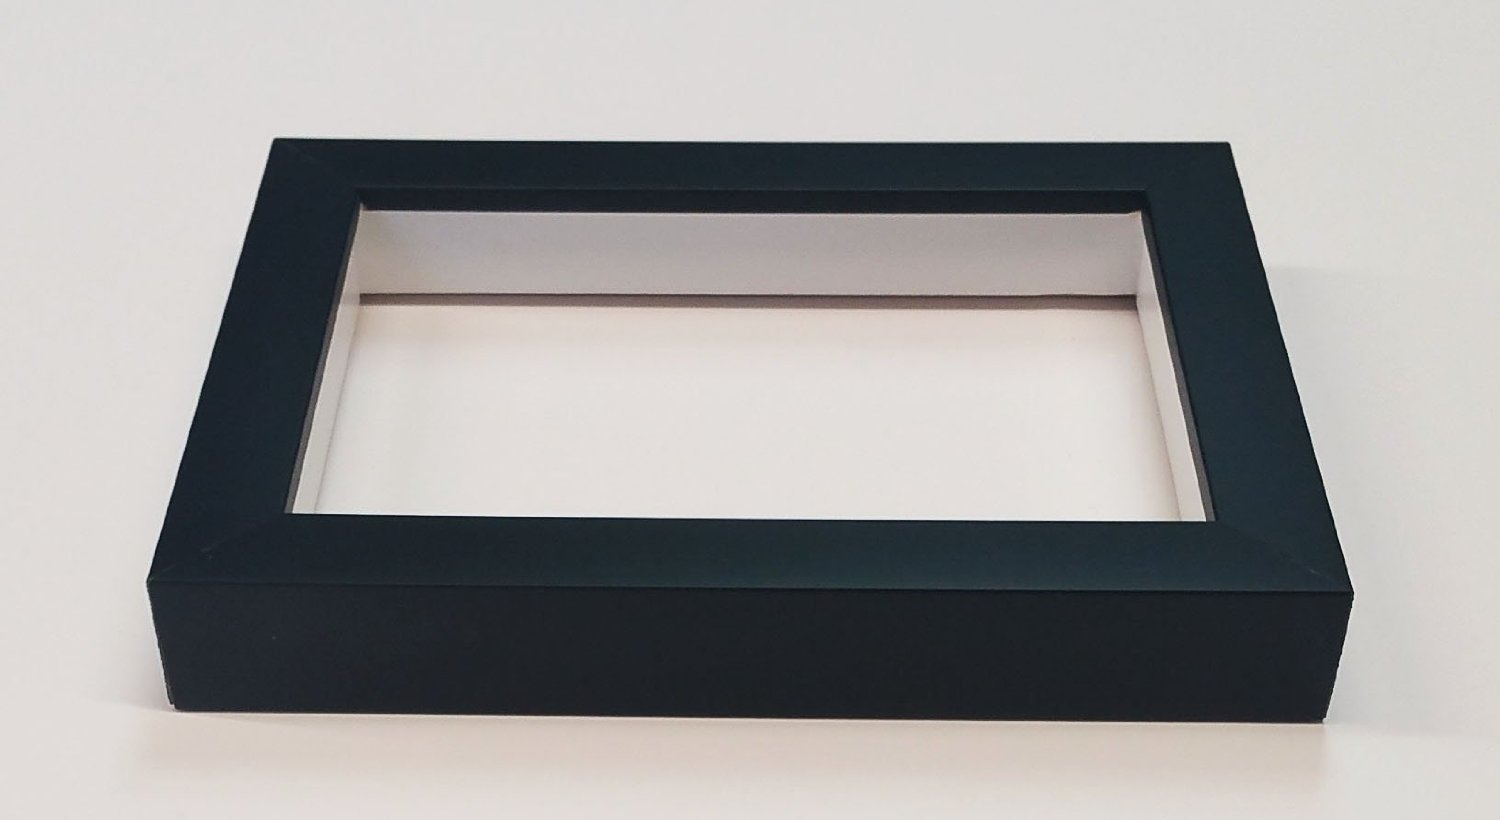 Shadowbox Gallery Wood Frames - Brown, 14 x 14 The Simple Things